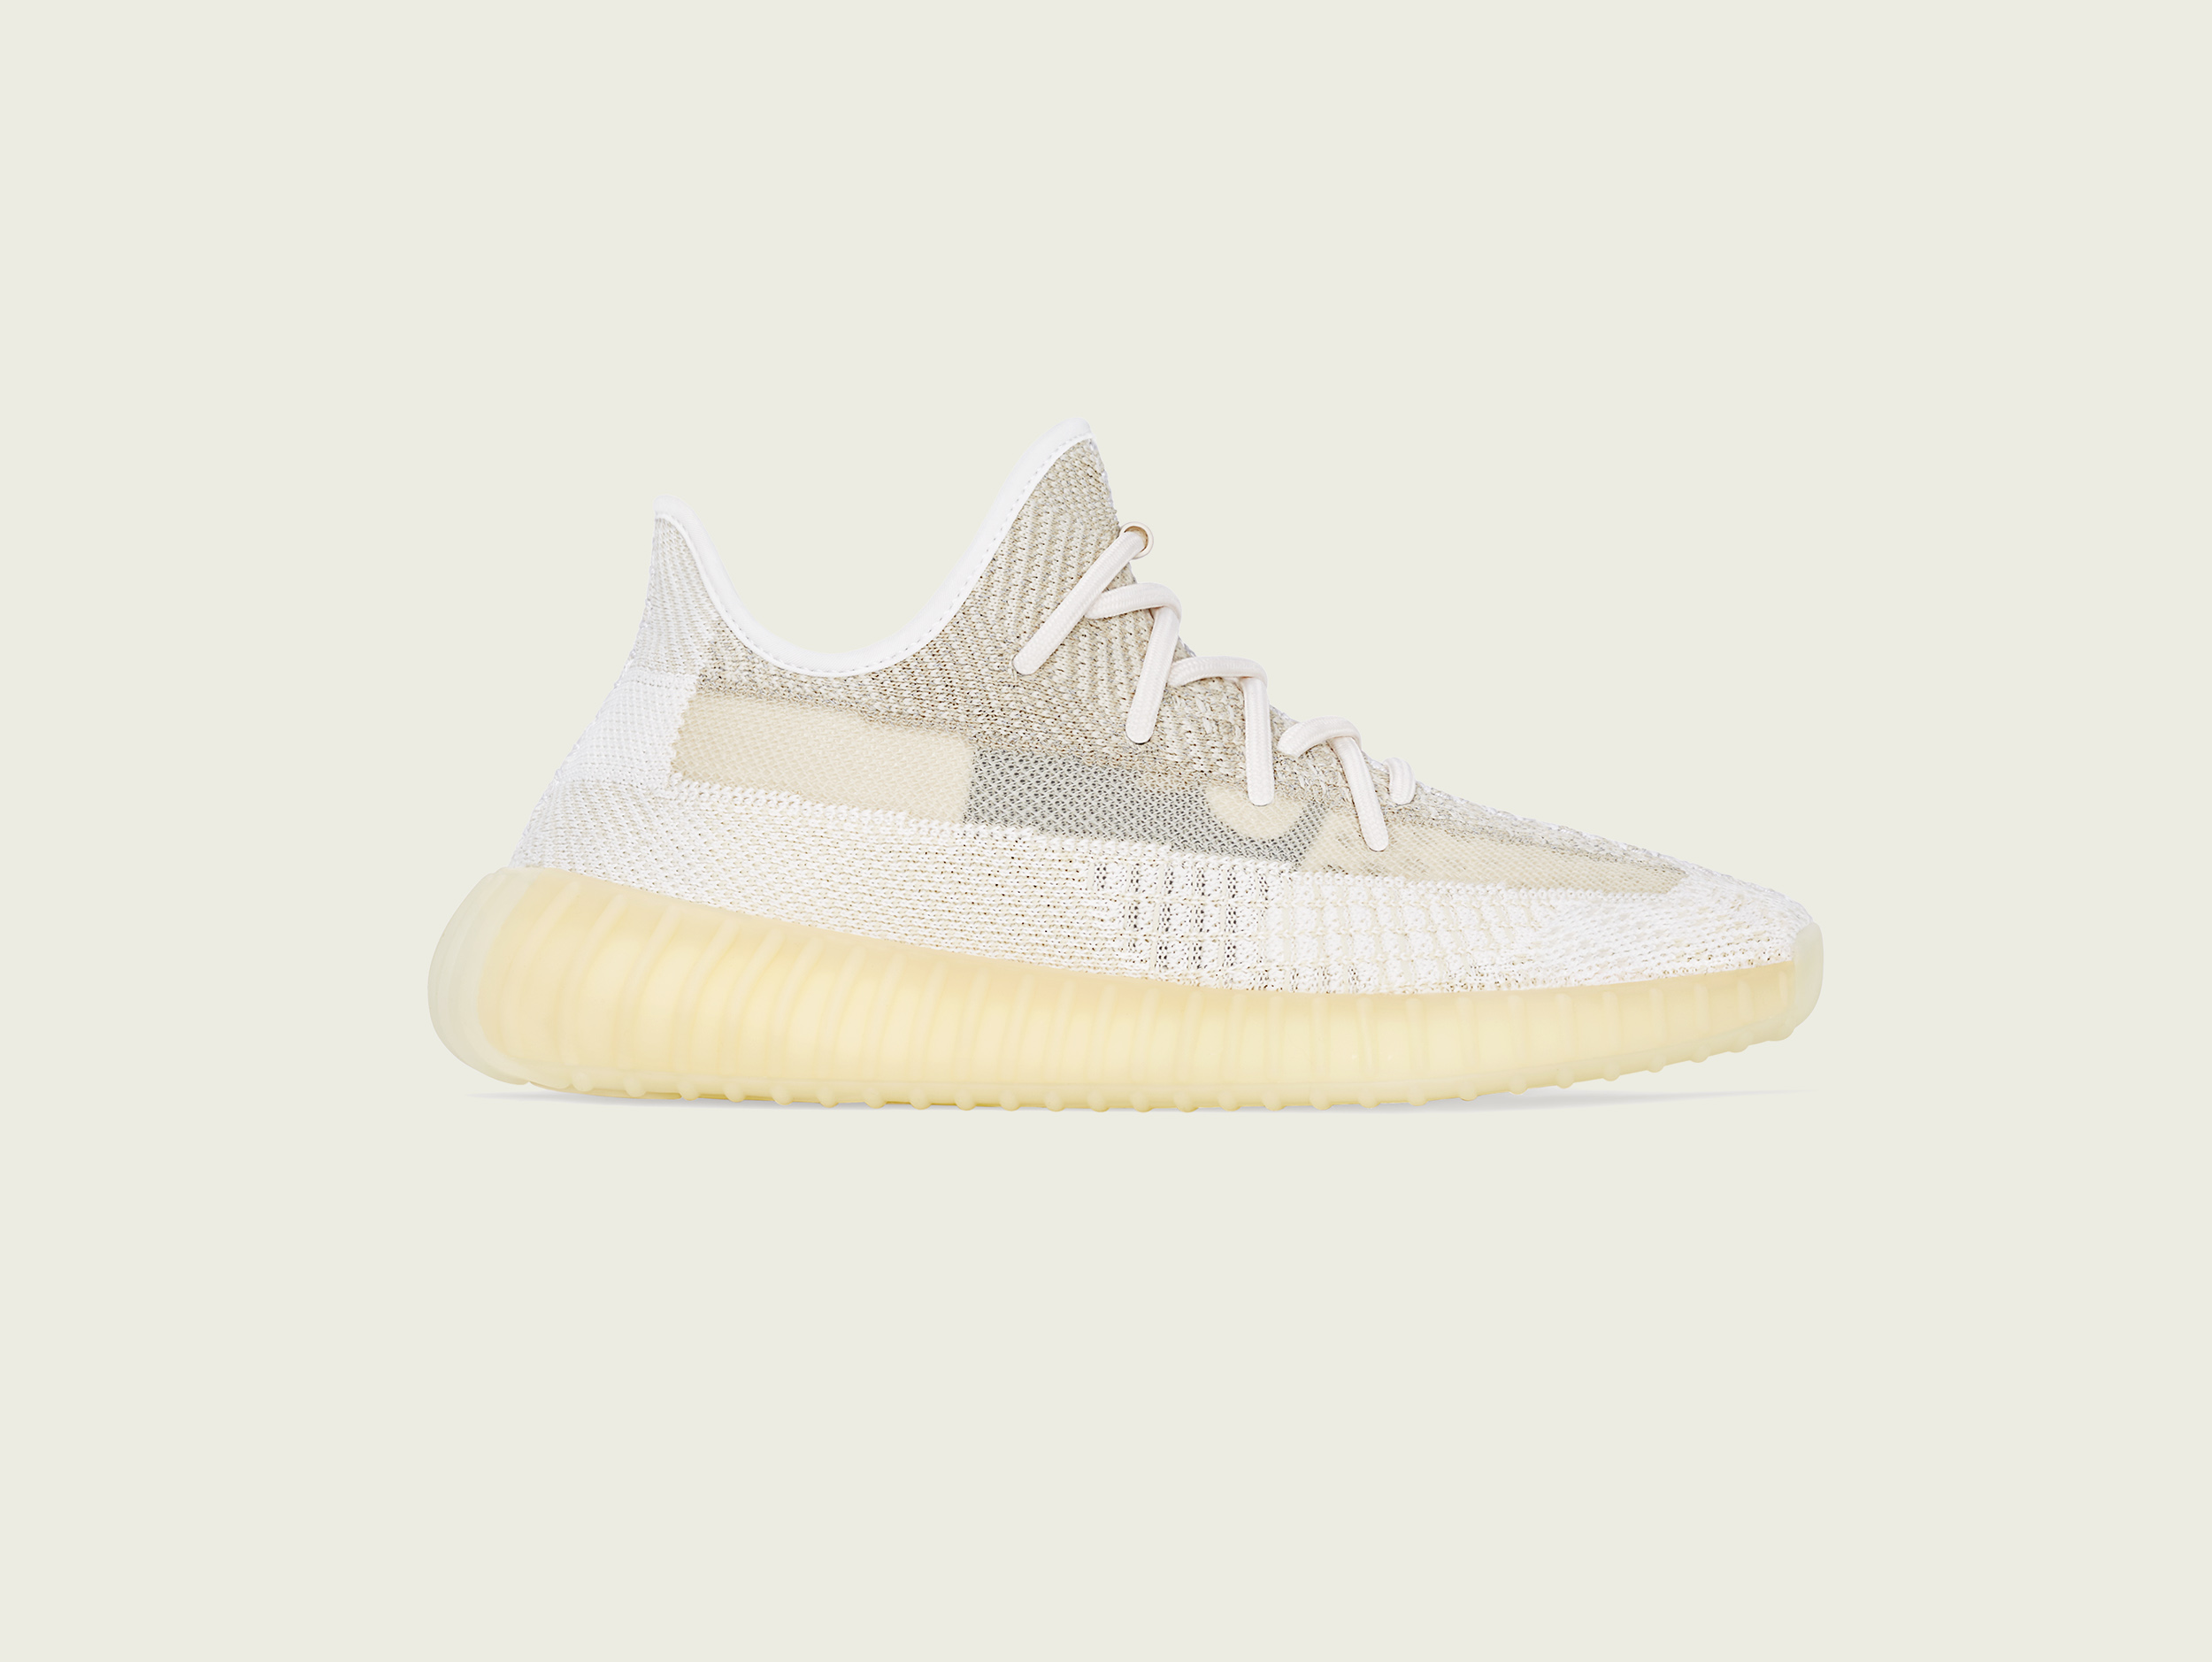 yeezy boost 350 v2 end